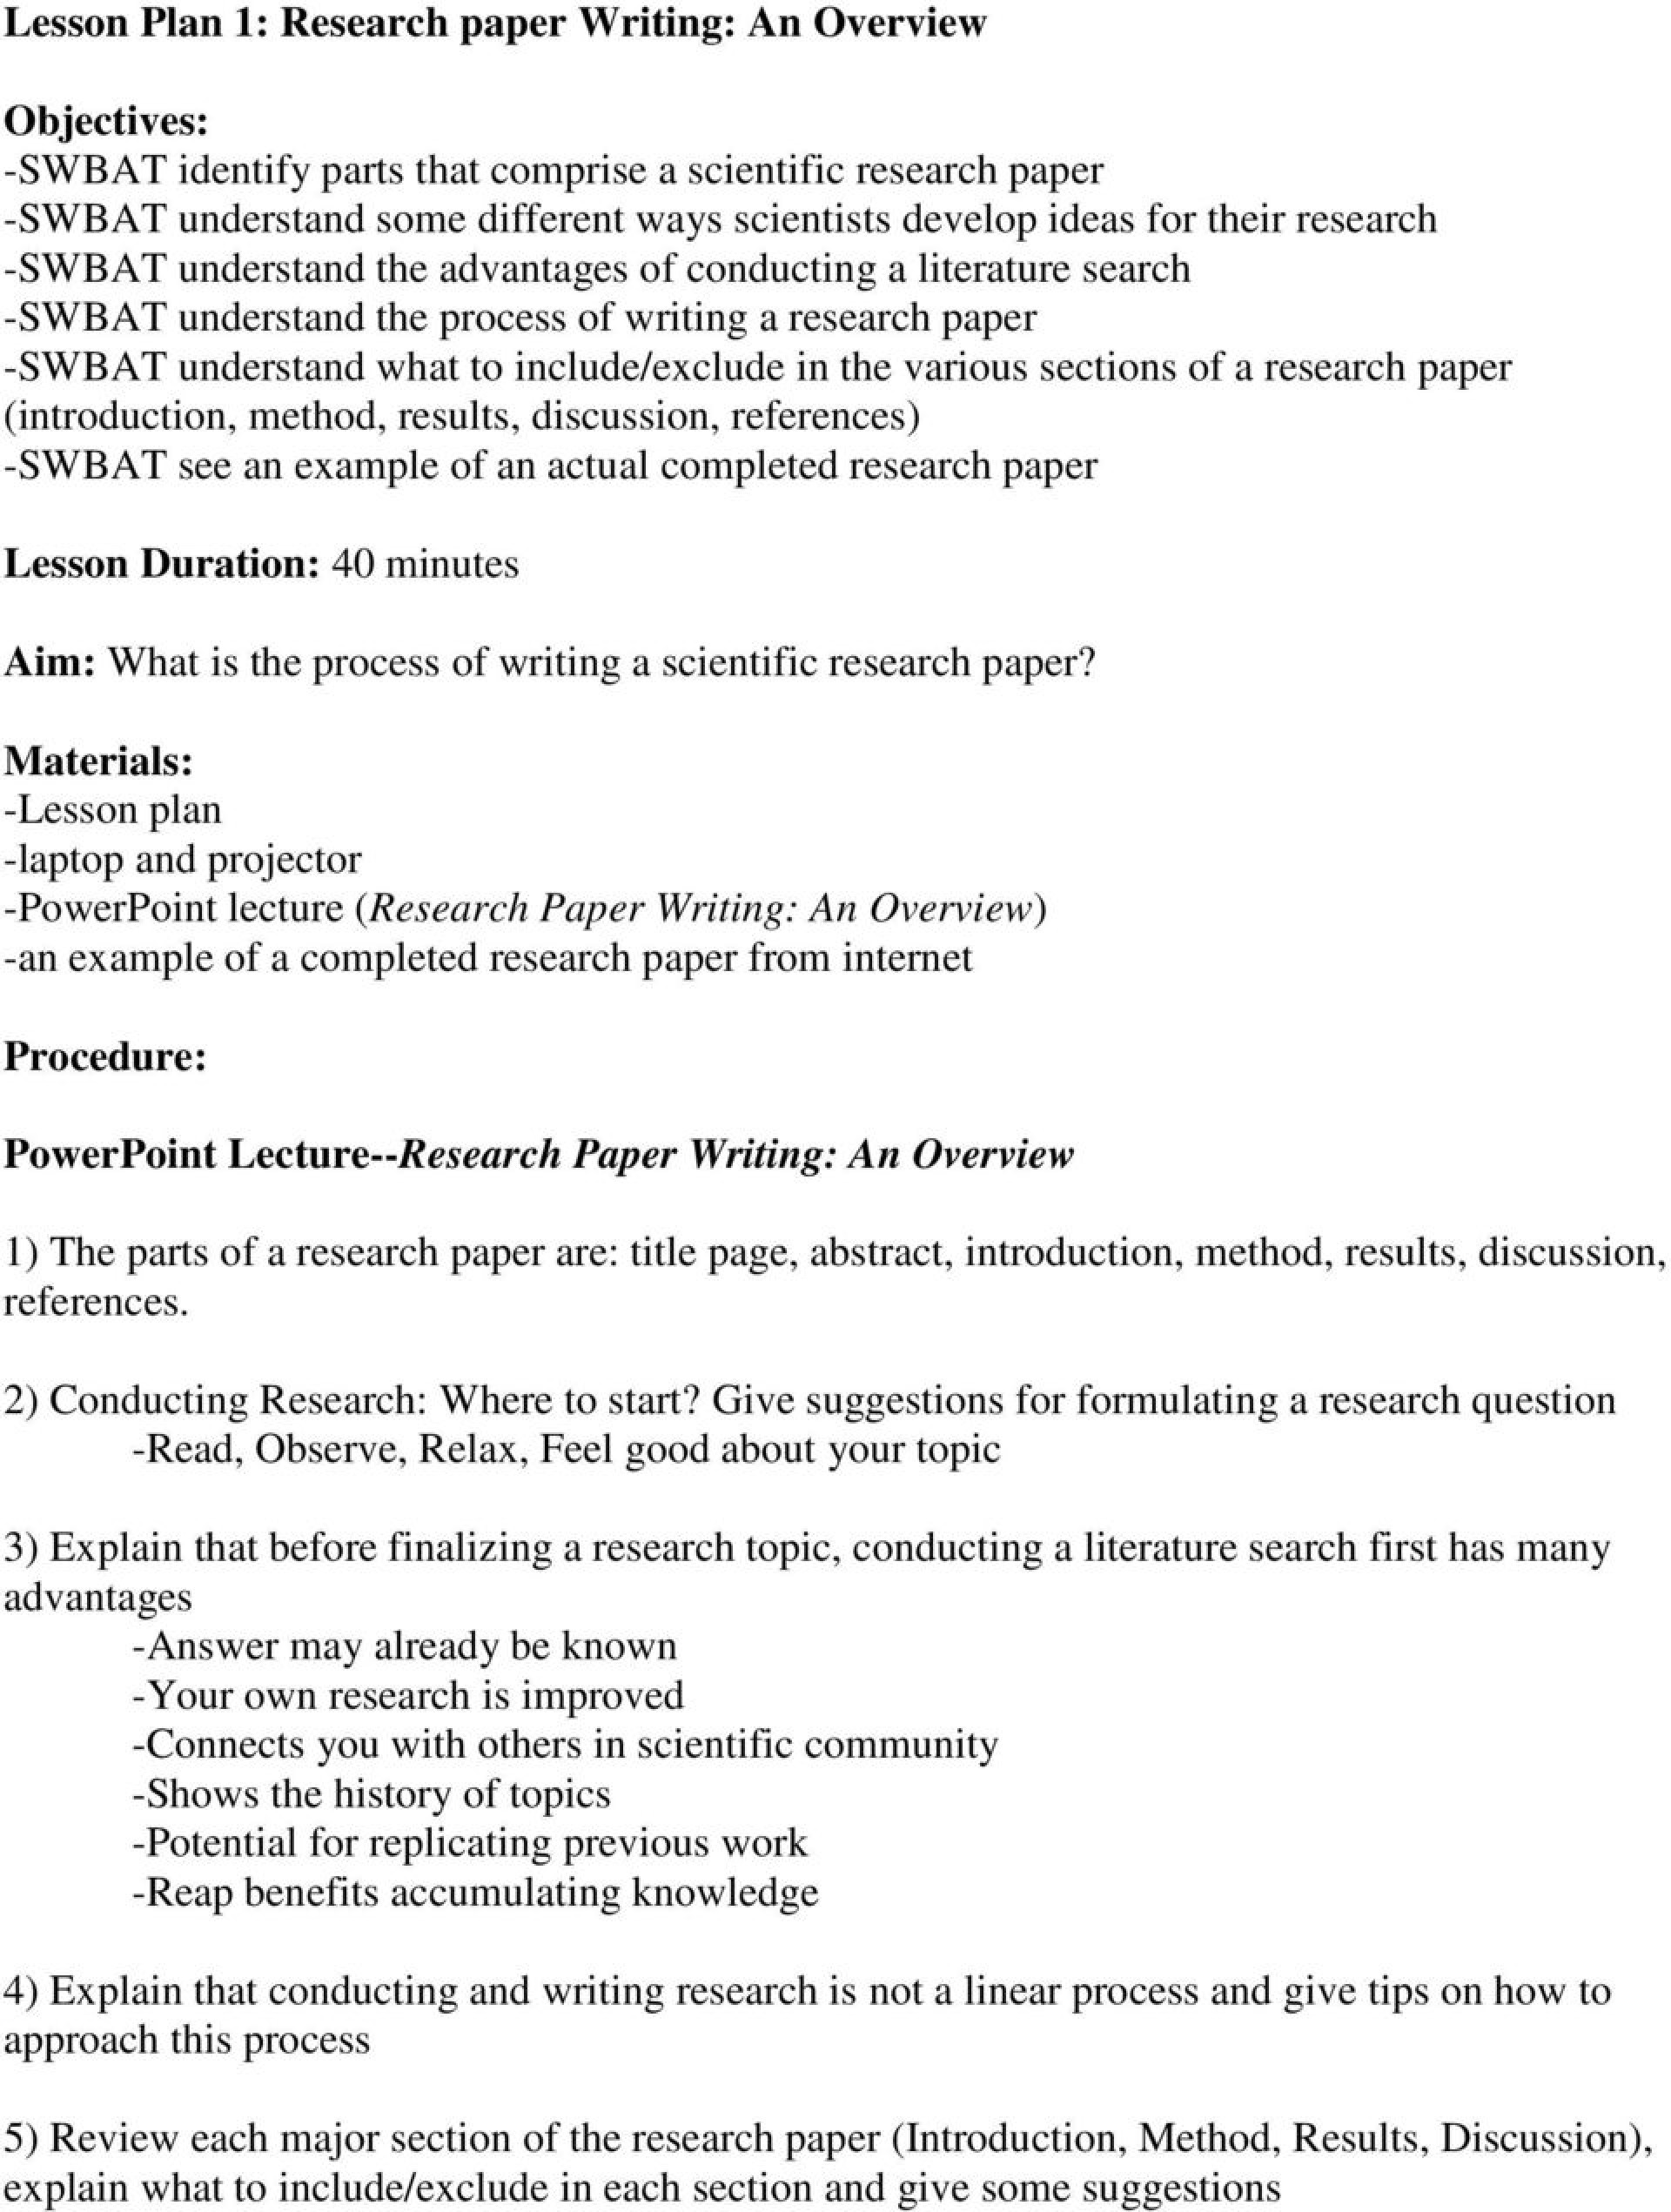 008 Page 1 Research Paper Parts Of Staggering Ppt A Qualitative Chapter 1920